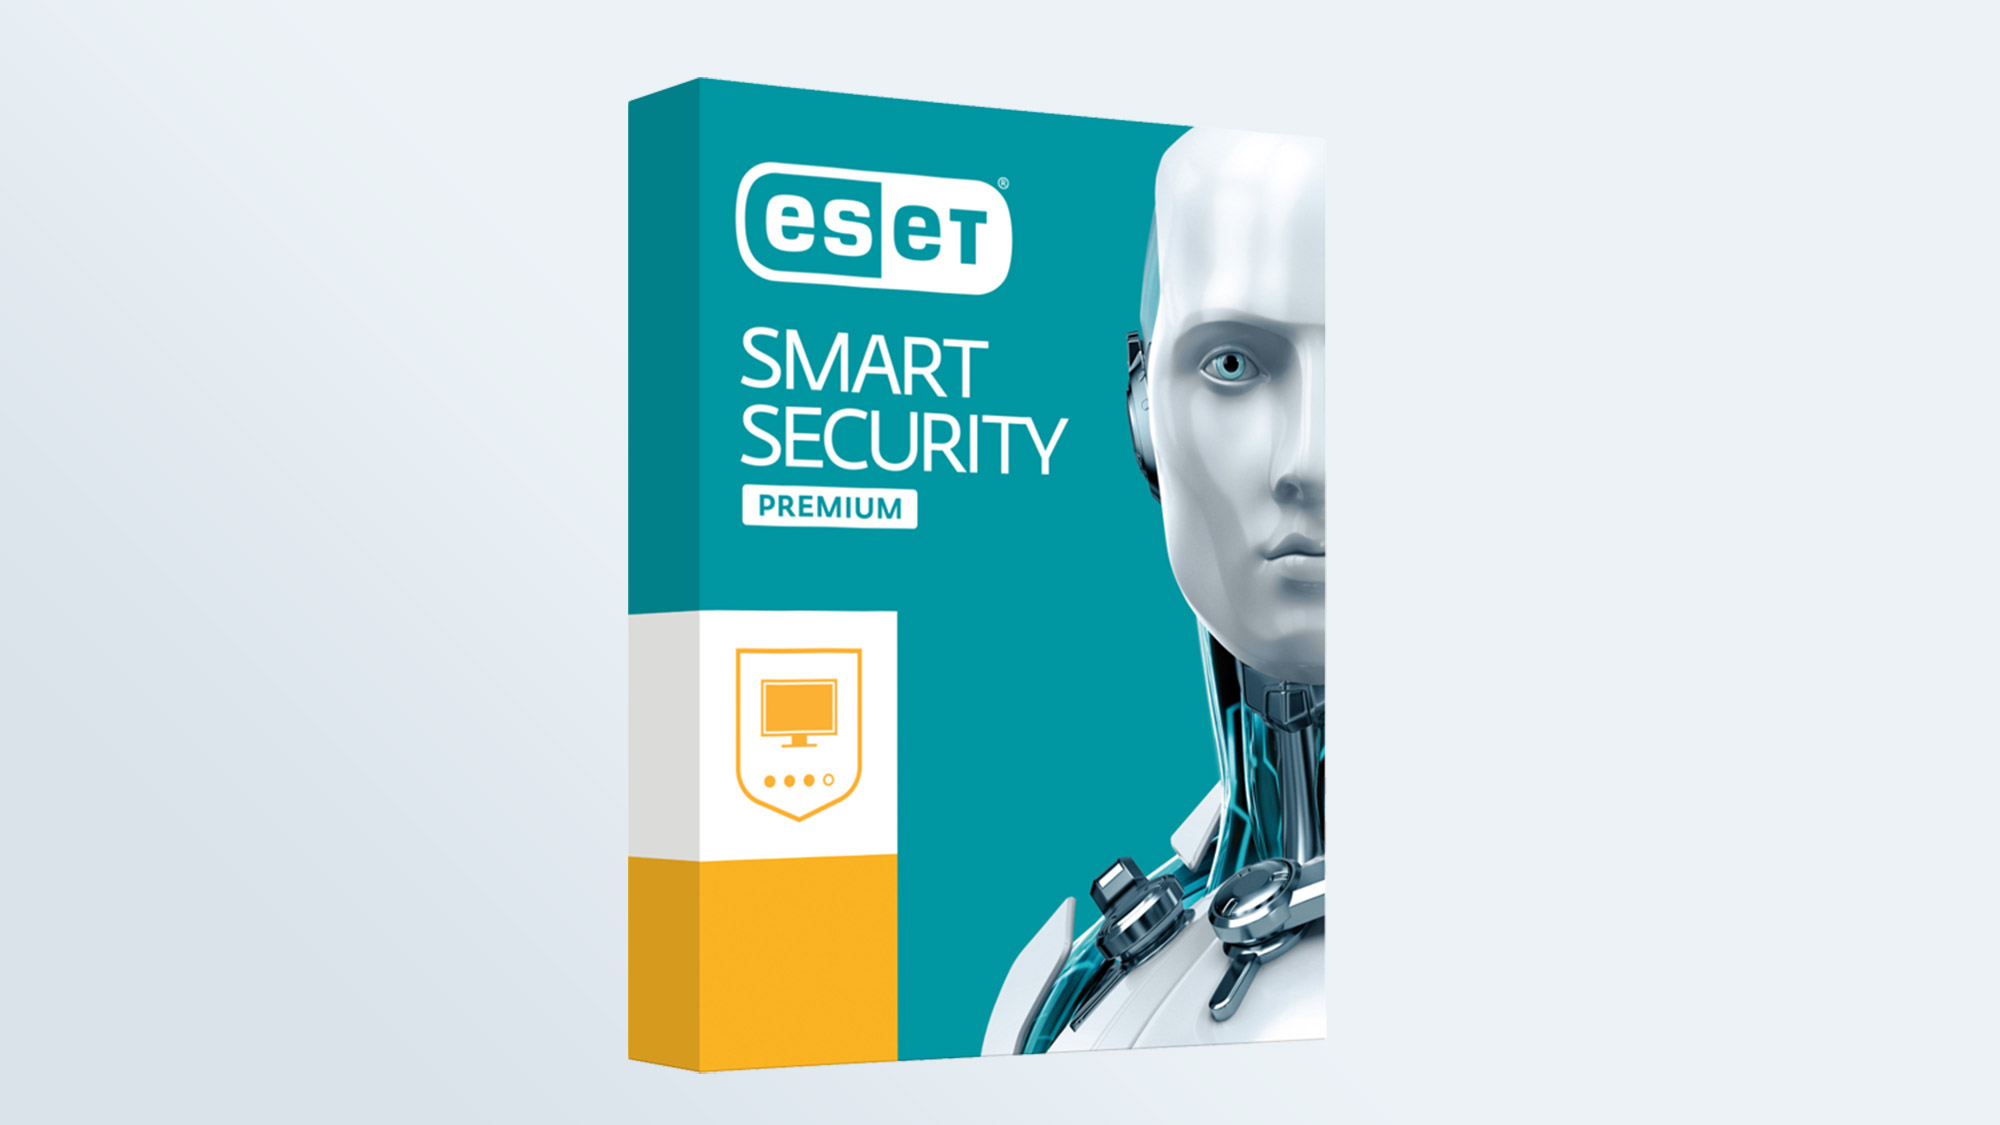 Best antivirus: ESET Smart Security Premium